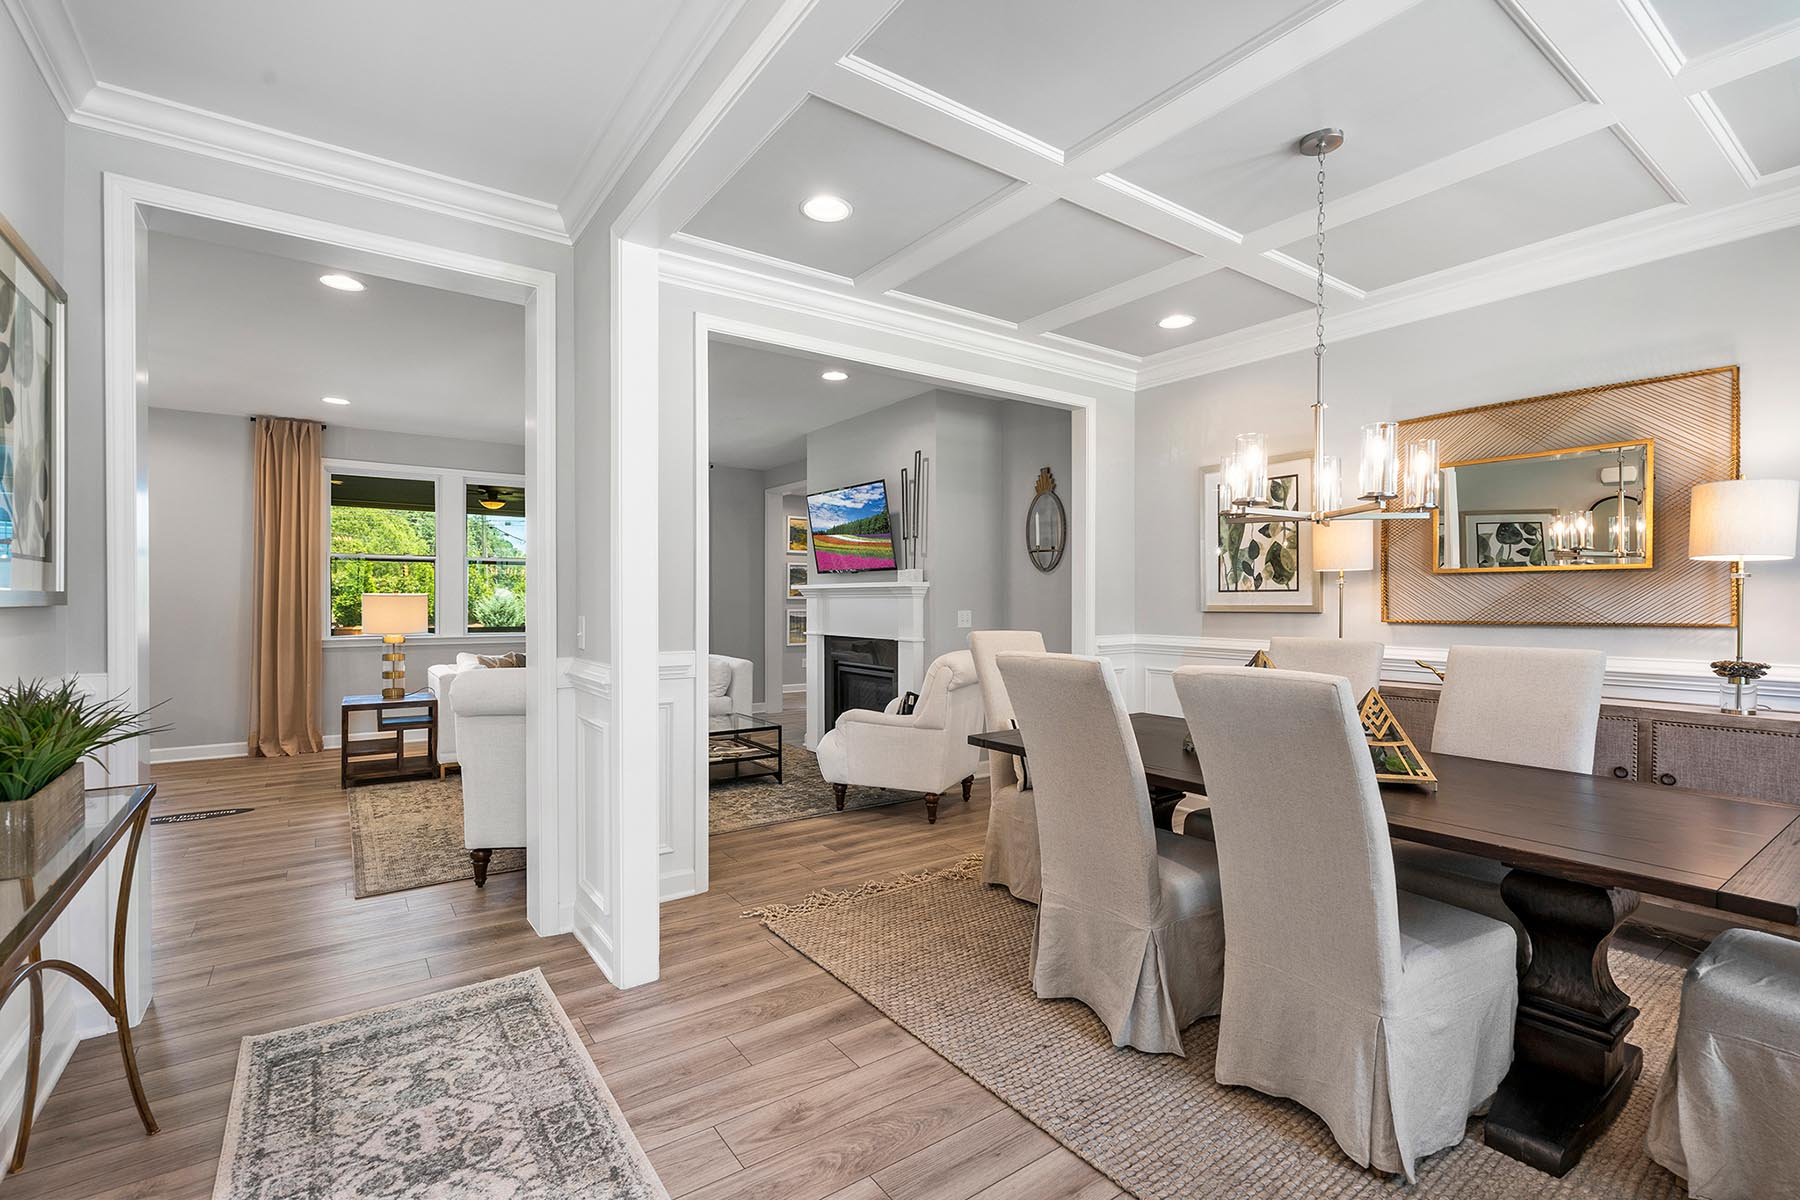 Larkin Plan Dining at Fairview Park in Cary North Carolina by Mattamy Homes